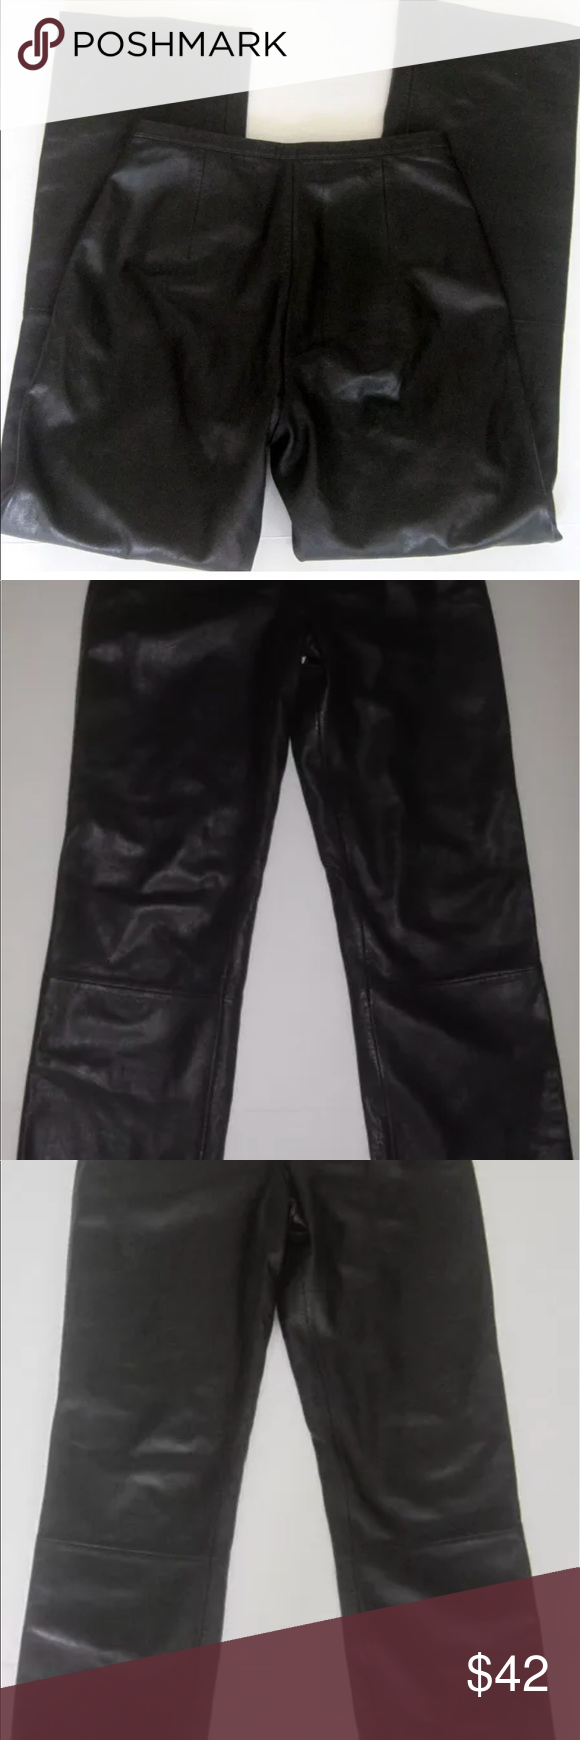 30 inch waist Black Leather Jeans Zip Fly